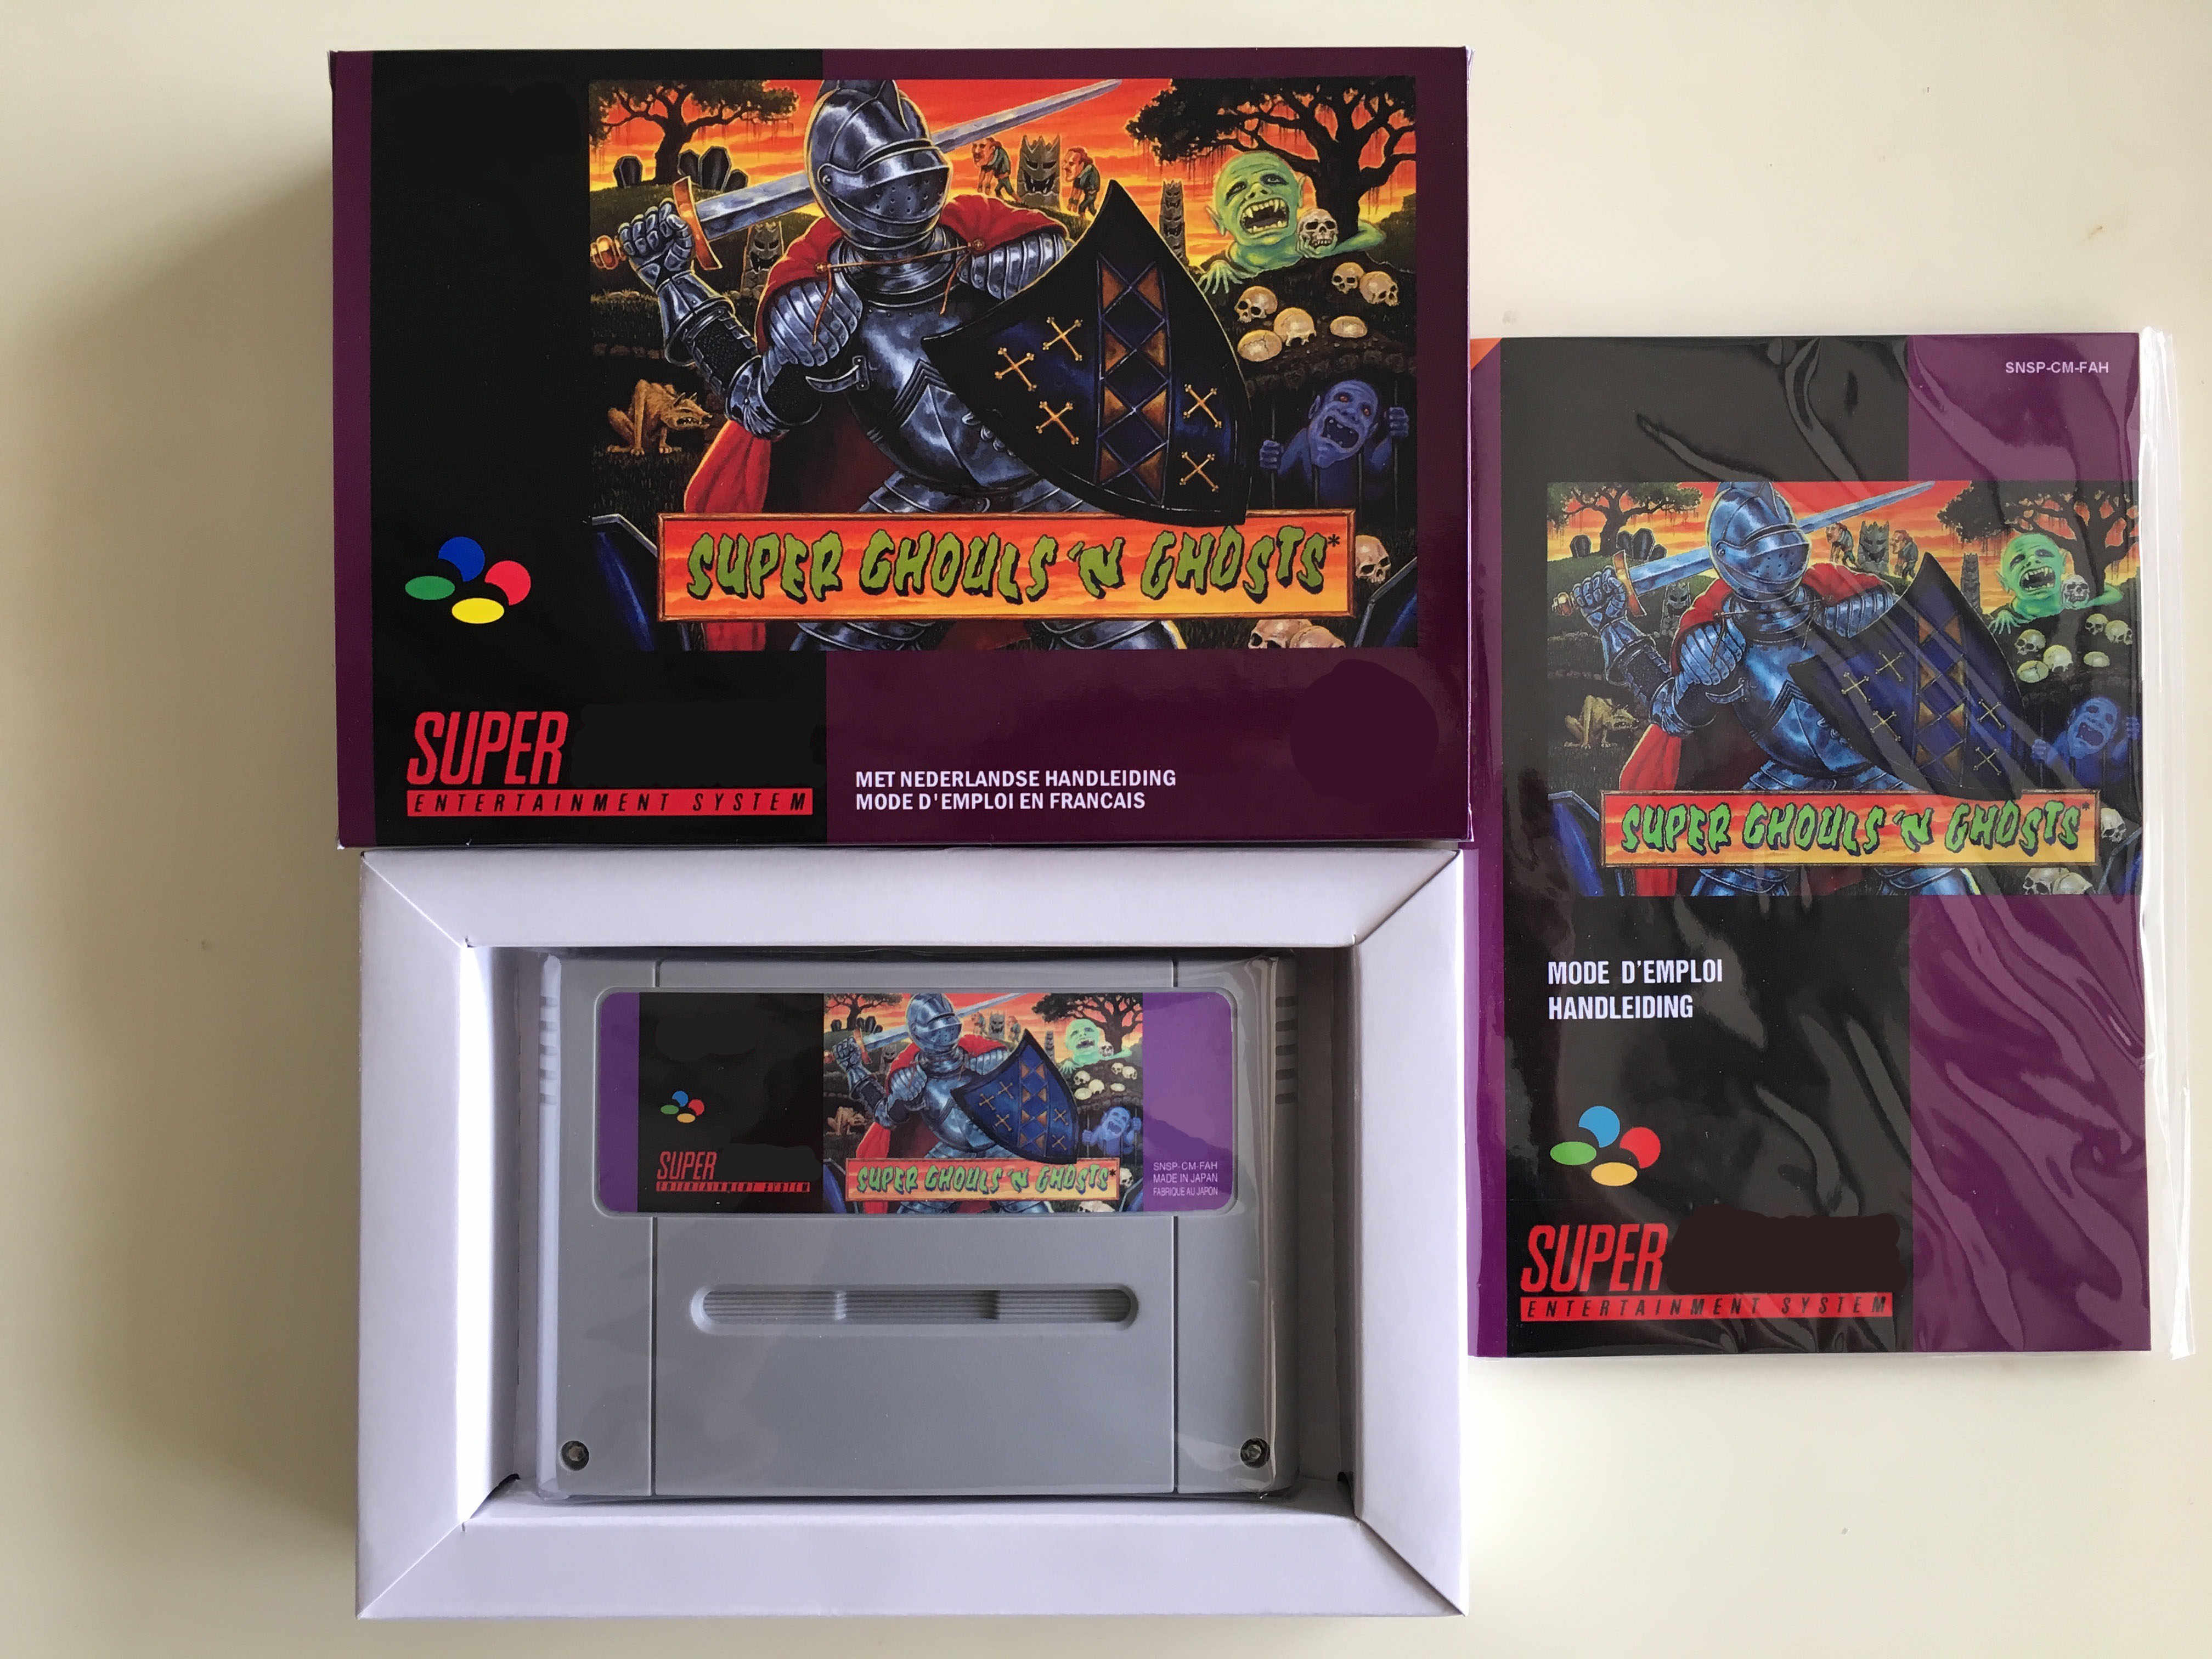 16Bit ** Super Ghouls'n Hantu (Bahasa Perancis Pal Versi!! Box + Manual + Cartridge!!)